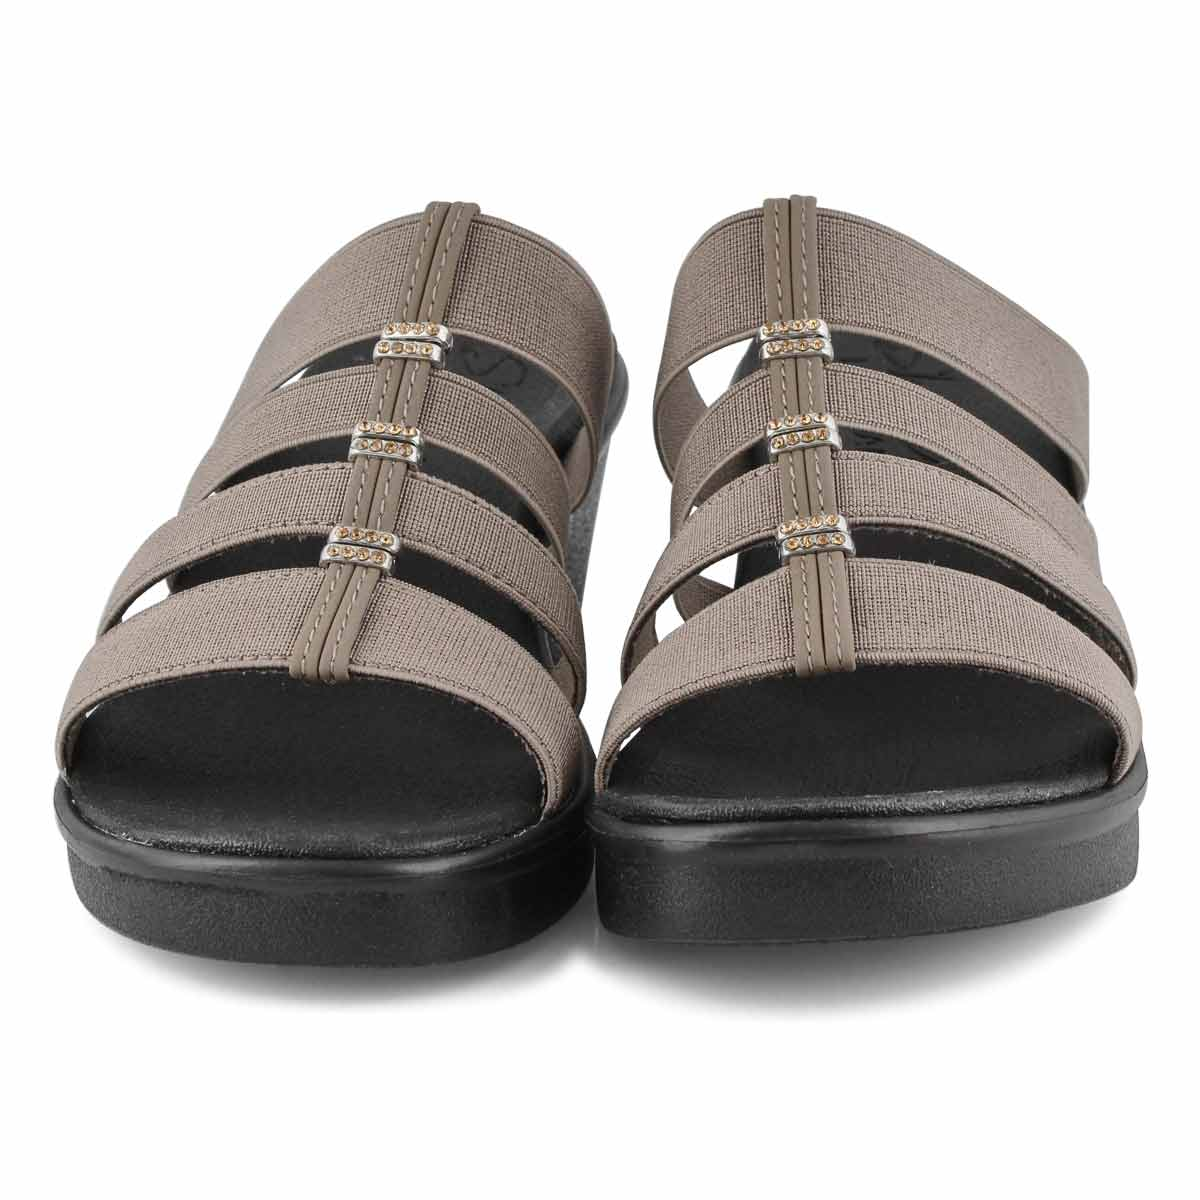 Lds Rumble On dark taupe wedge sandal